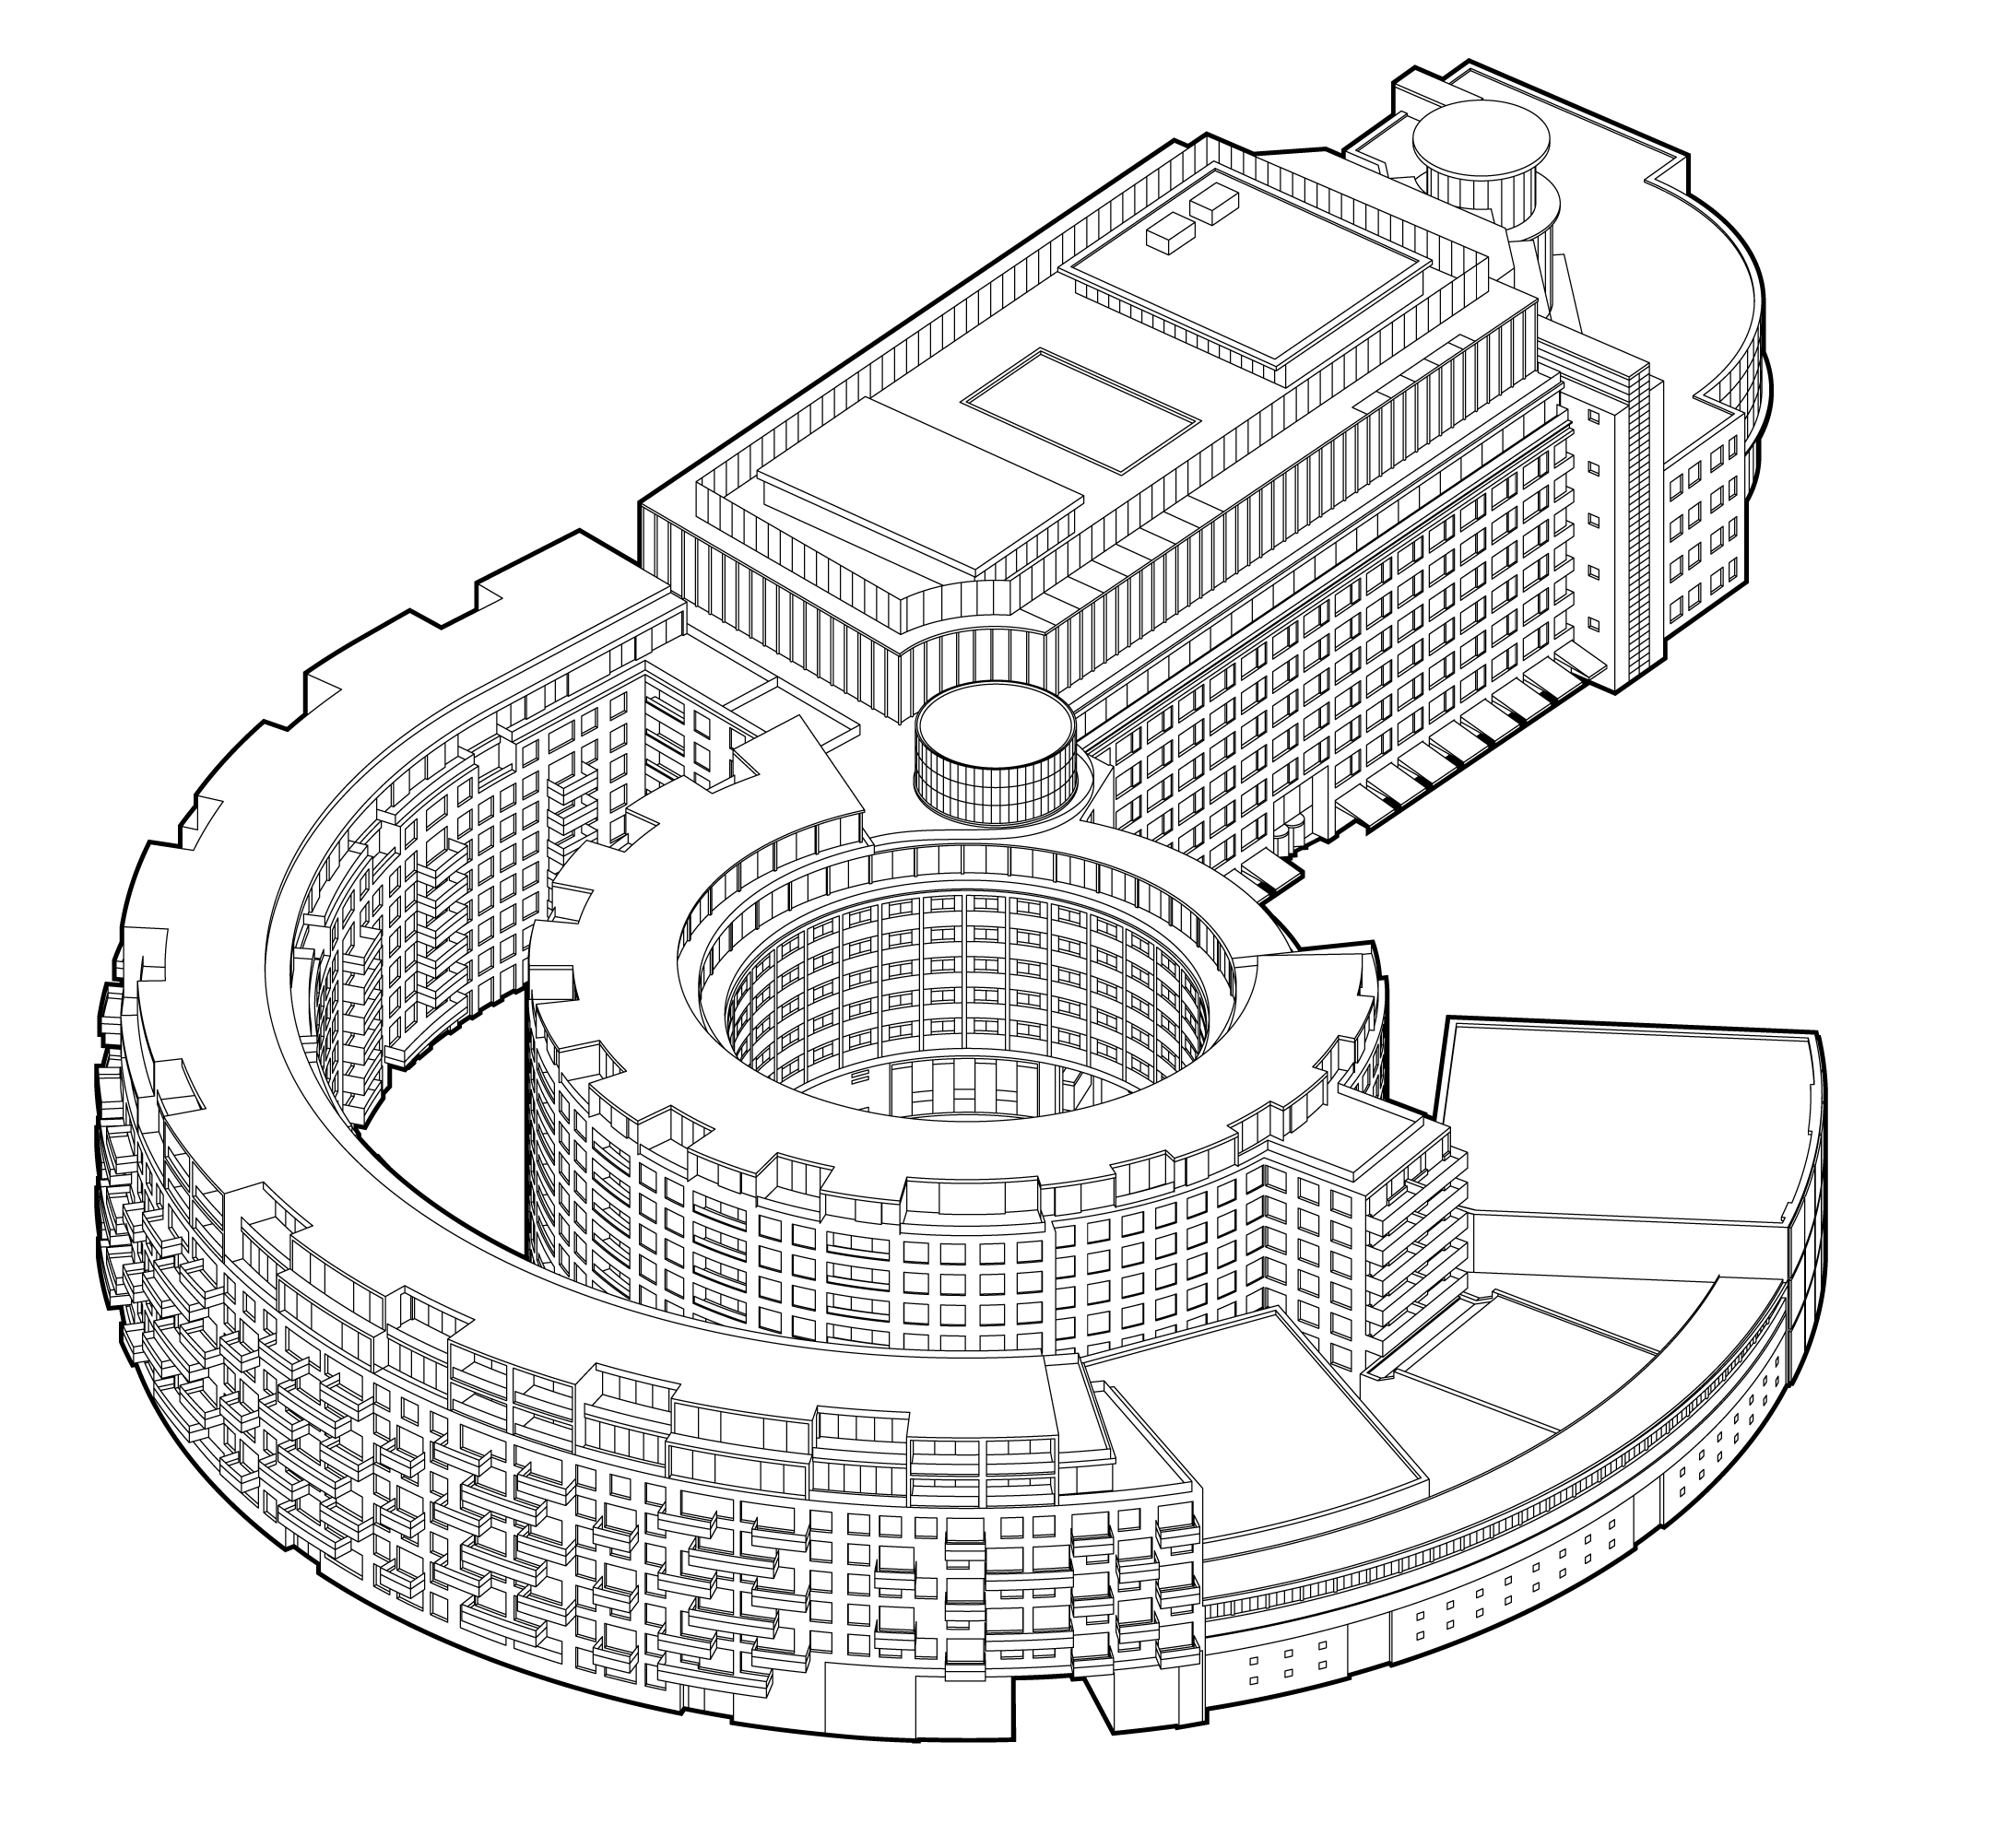 Diagram of the Television Centre